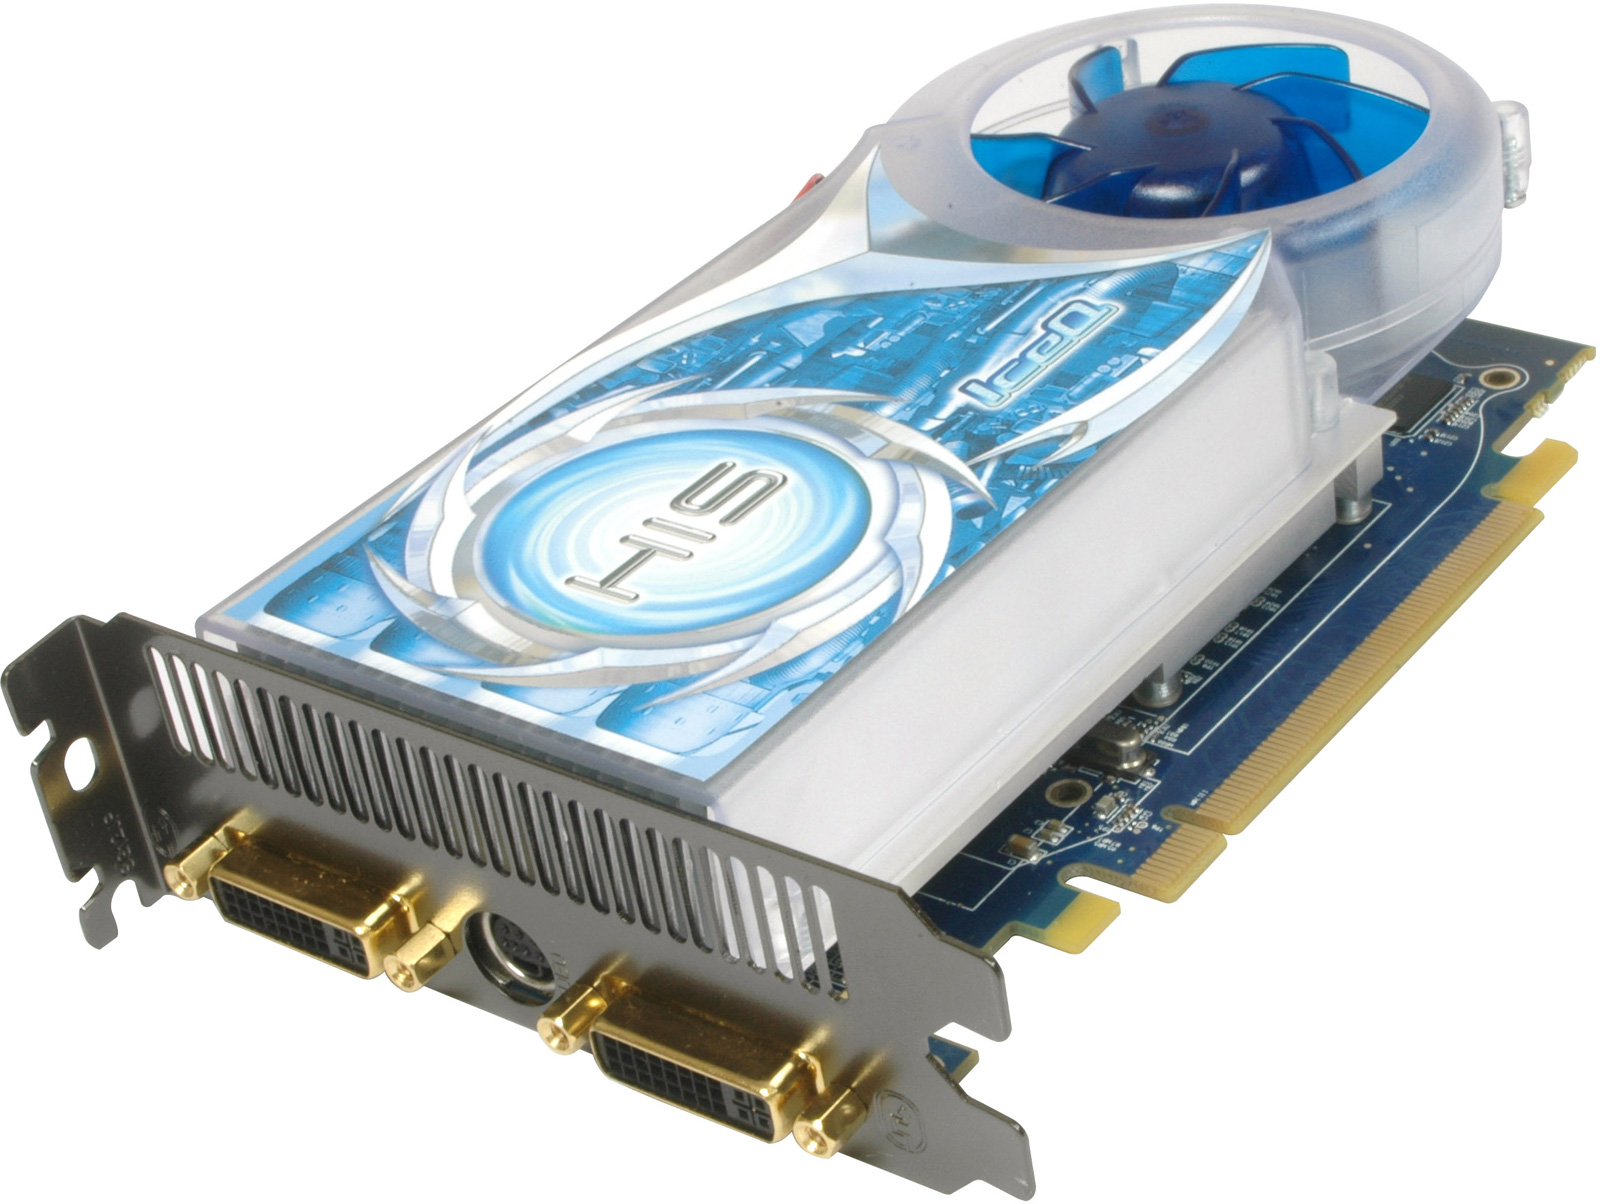 HIS HD 2600PRO IceQ Turbo 512MB/256MB DDR2 PCIe < Legacy Products ...